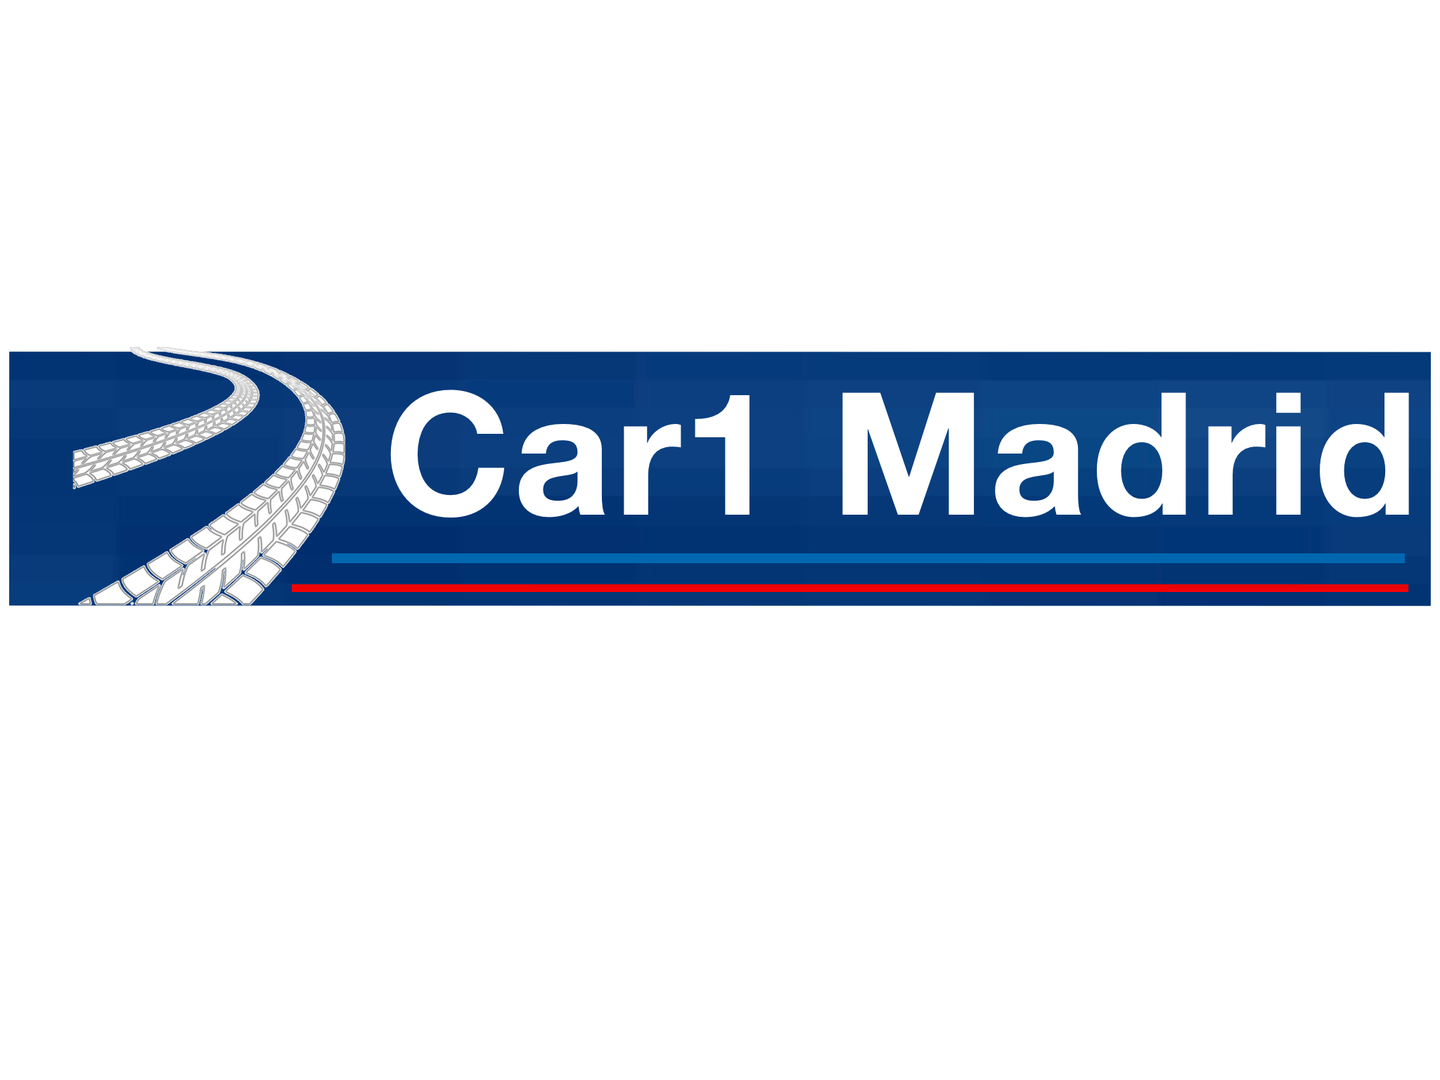 CAR 1 Madrid